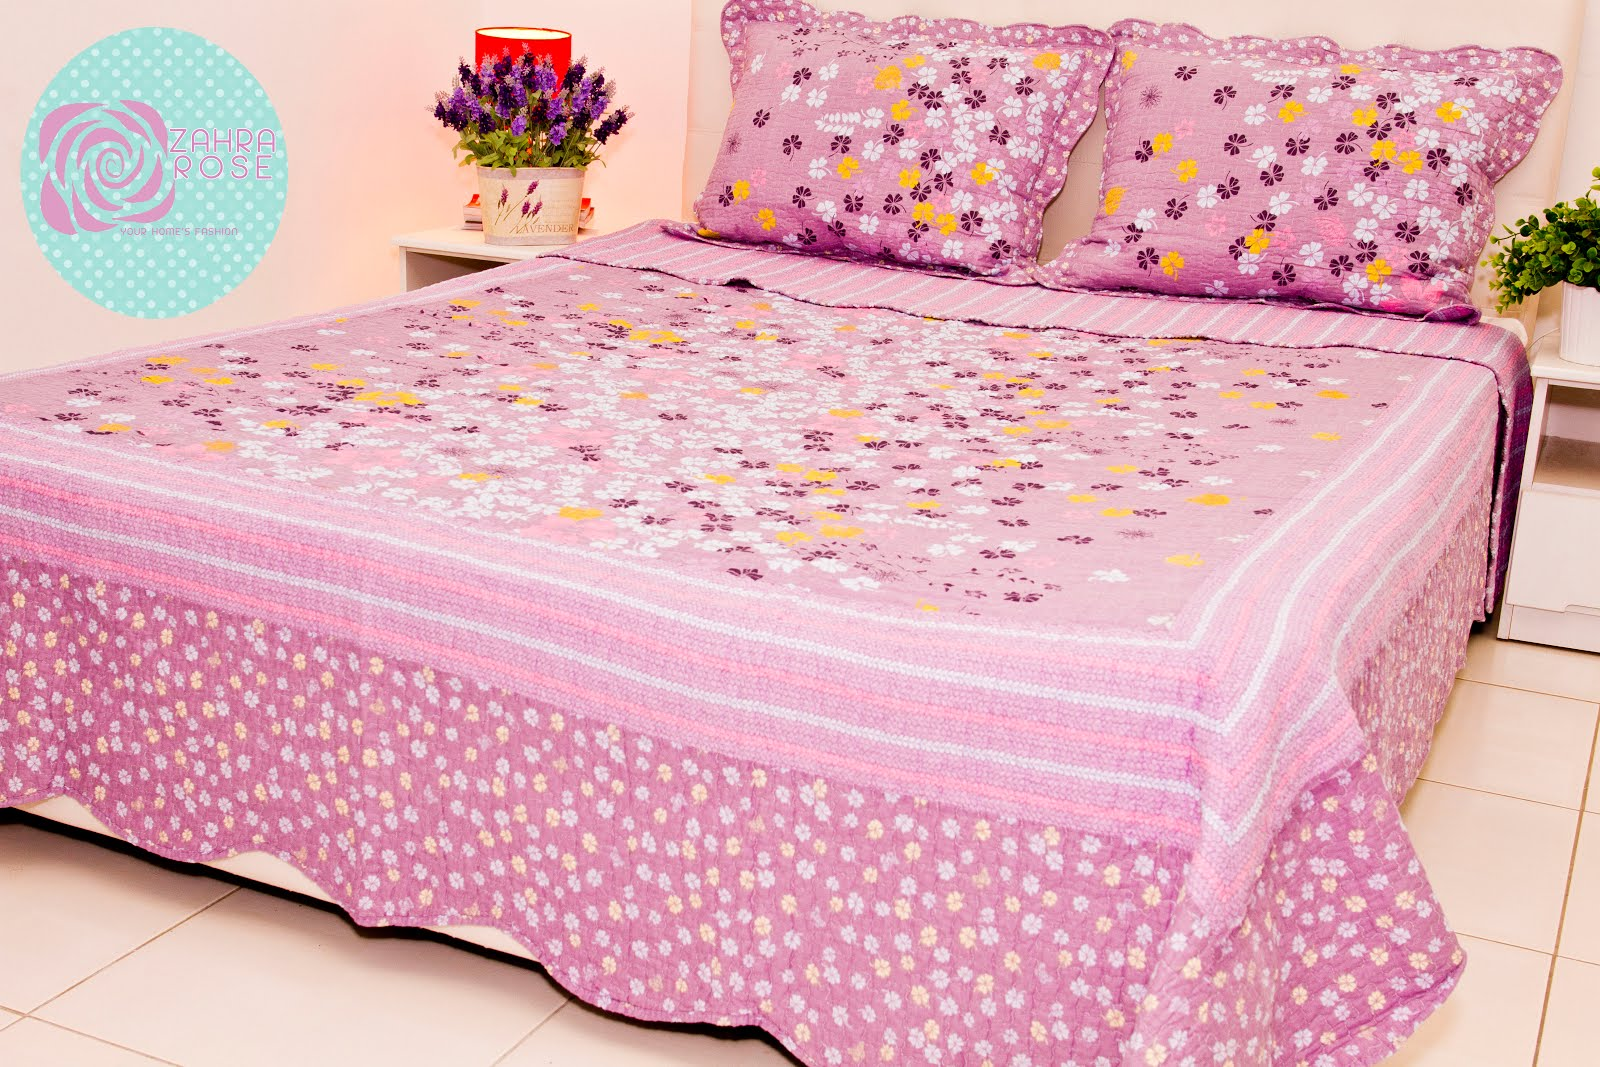 Bed sheets designs patchwork - Zr 003